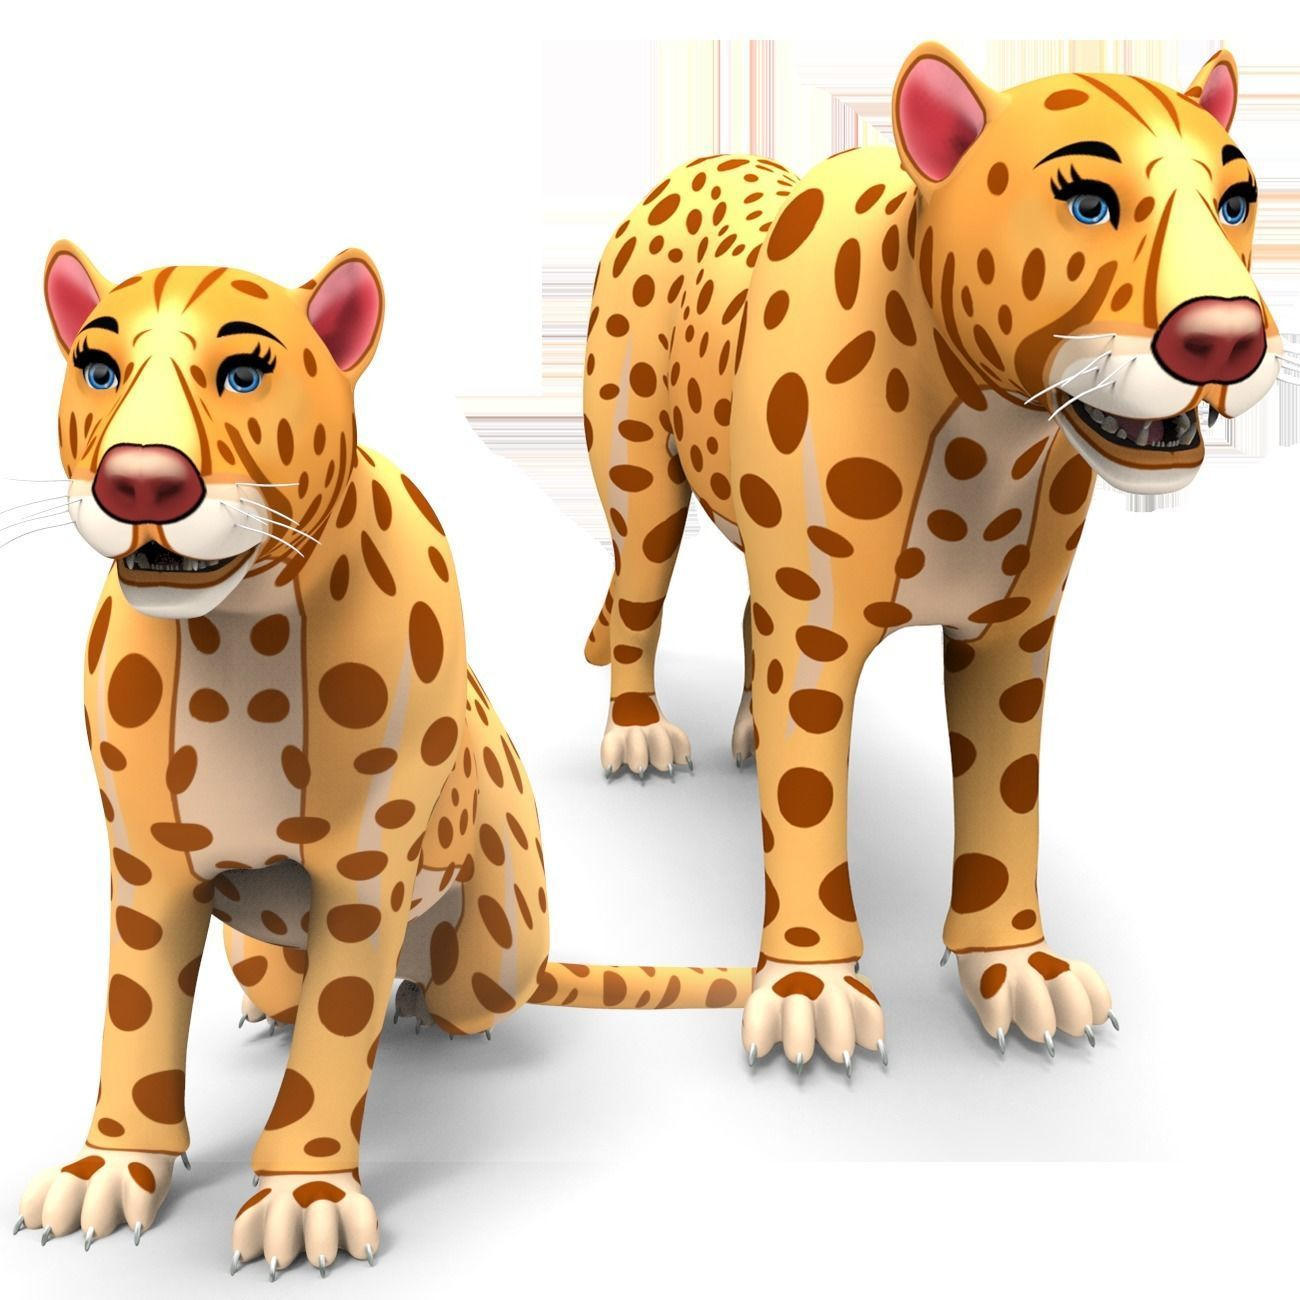 3D Rigged And Animated Cartoon Leopard